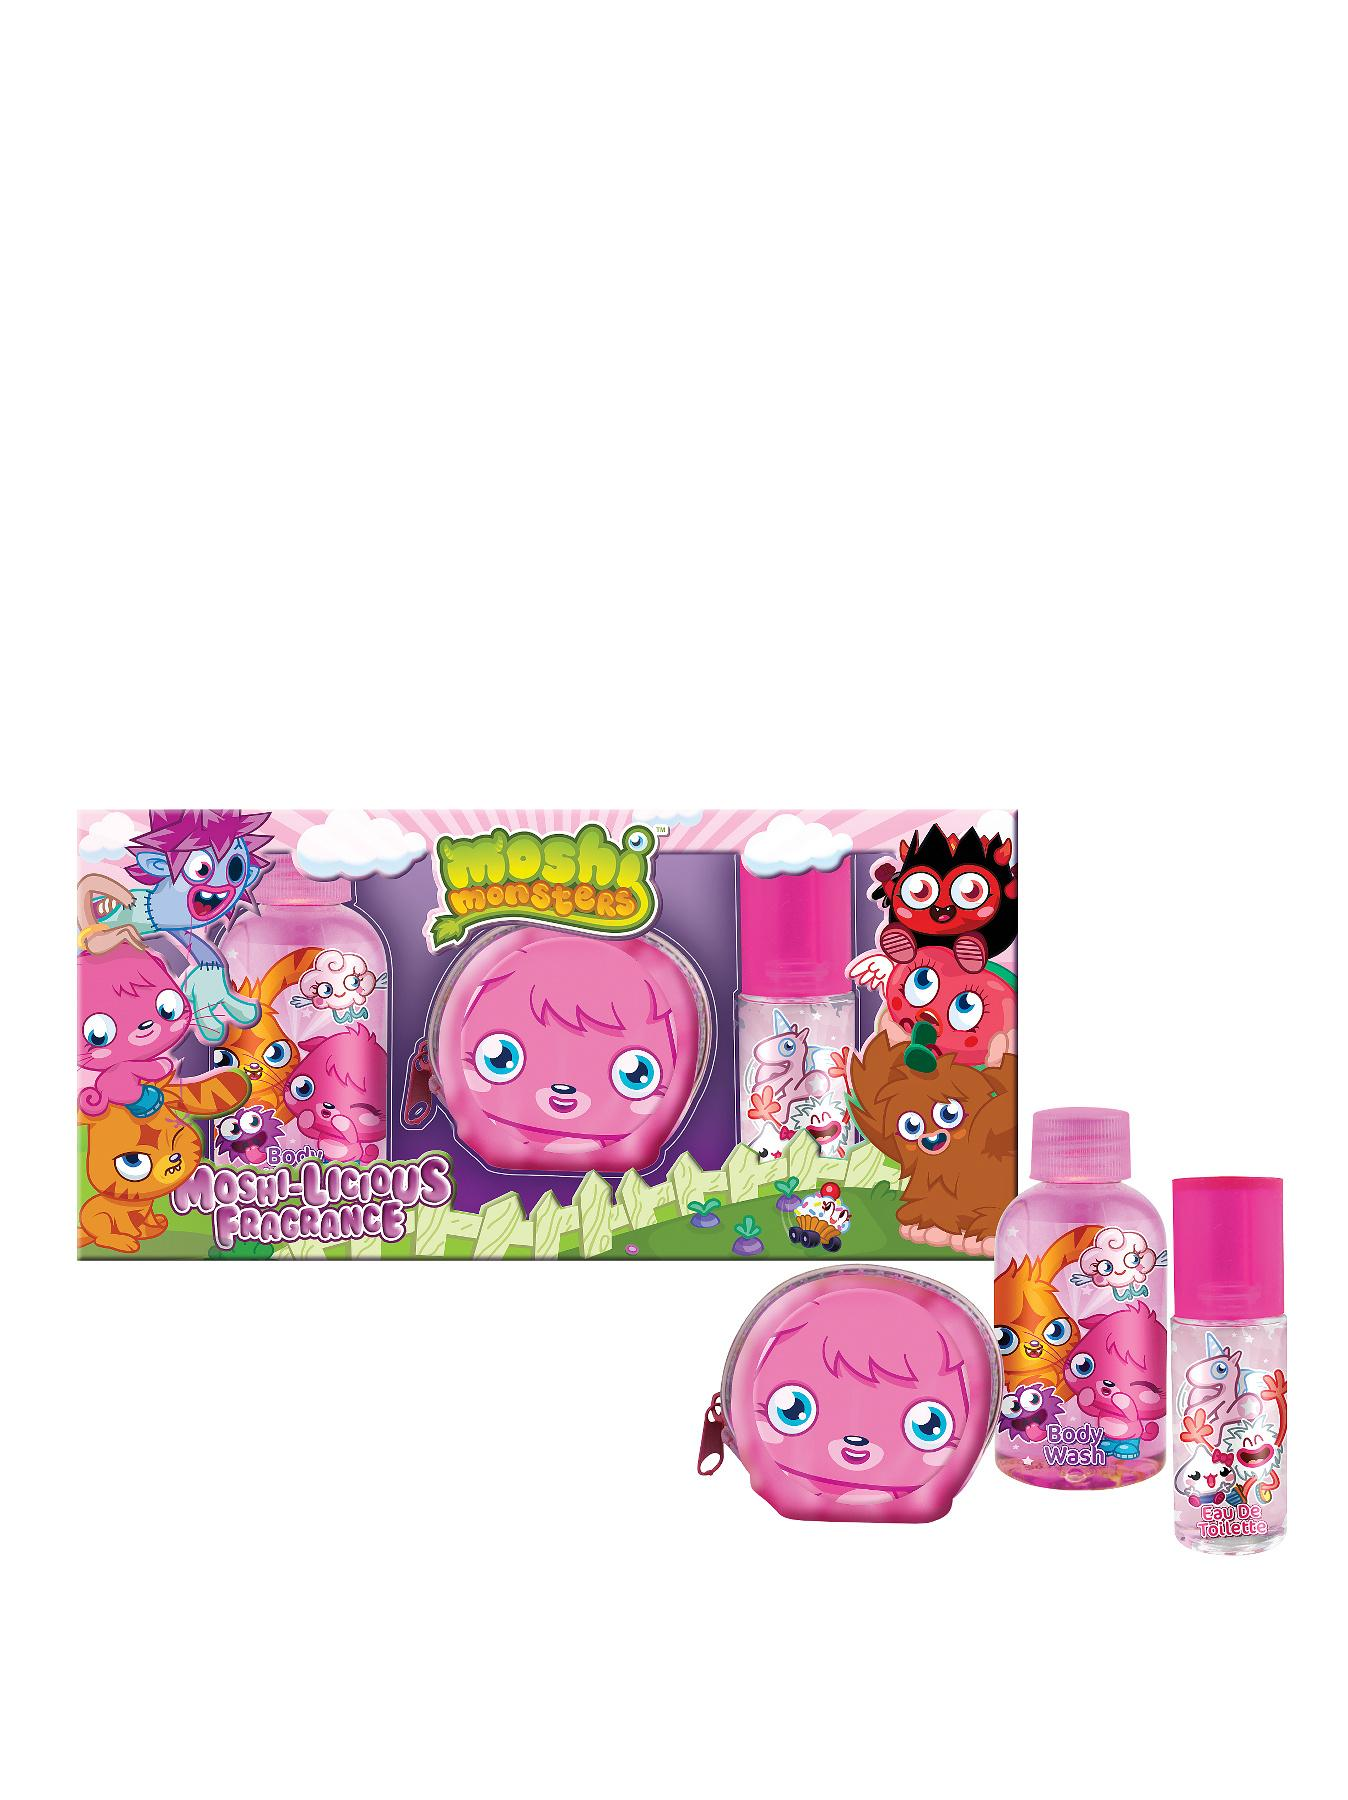 Poppet Fashiontastic Fragrance Gift Set